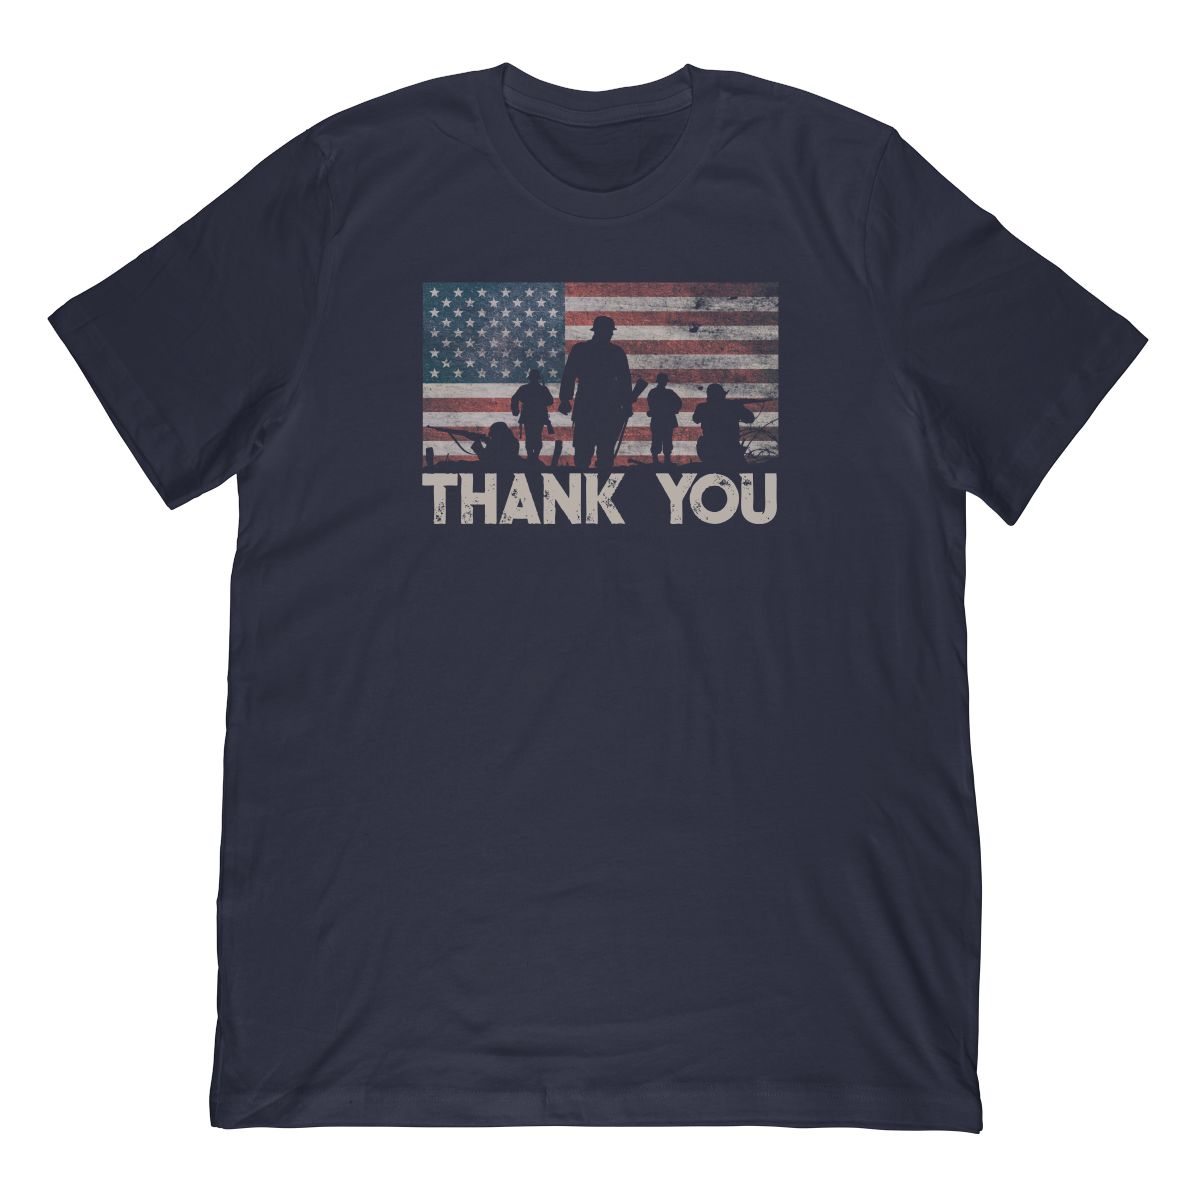 Thank You – Veteran's Day American Flag T-Shirt